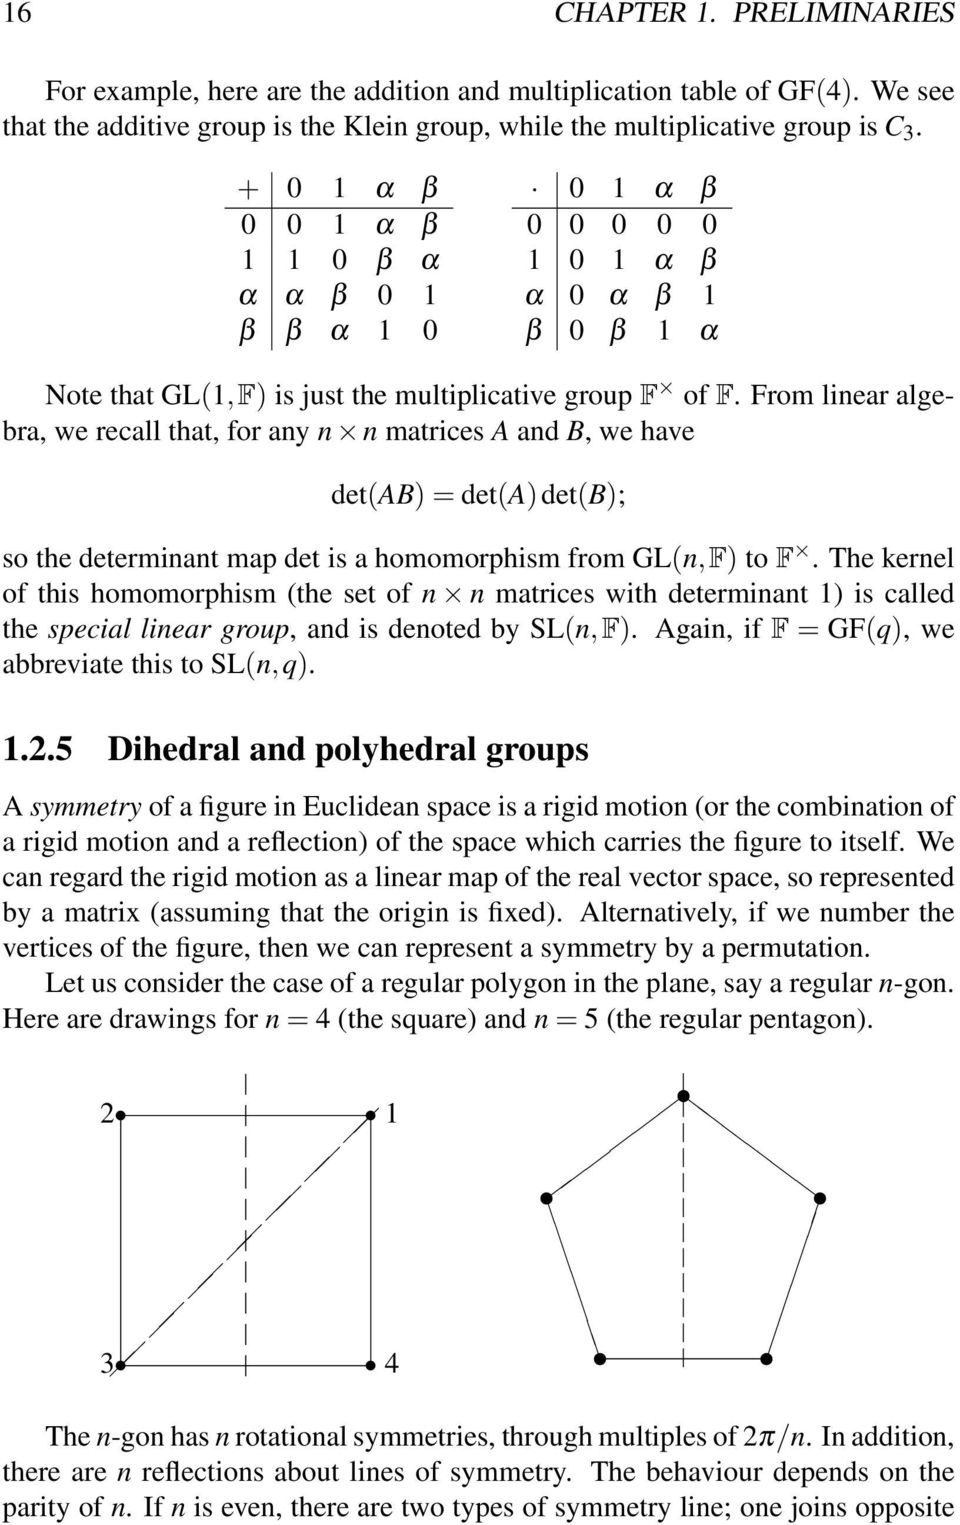 From linear algebra, we recall that, for any n n matrices A and B, we have det(ab) = det(a) det(b); so the determinant map det is a homomorphism from GL(n,F) to F.